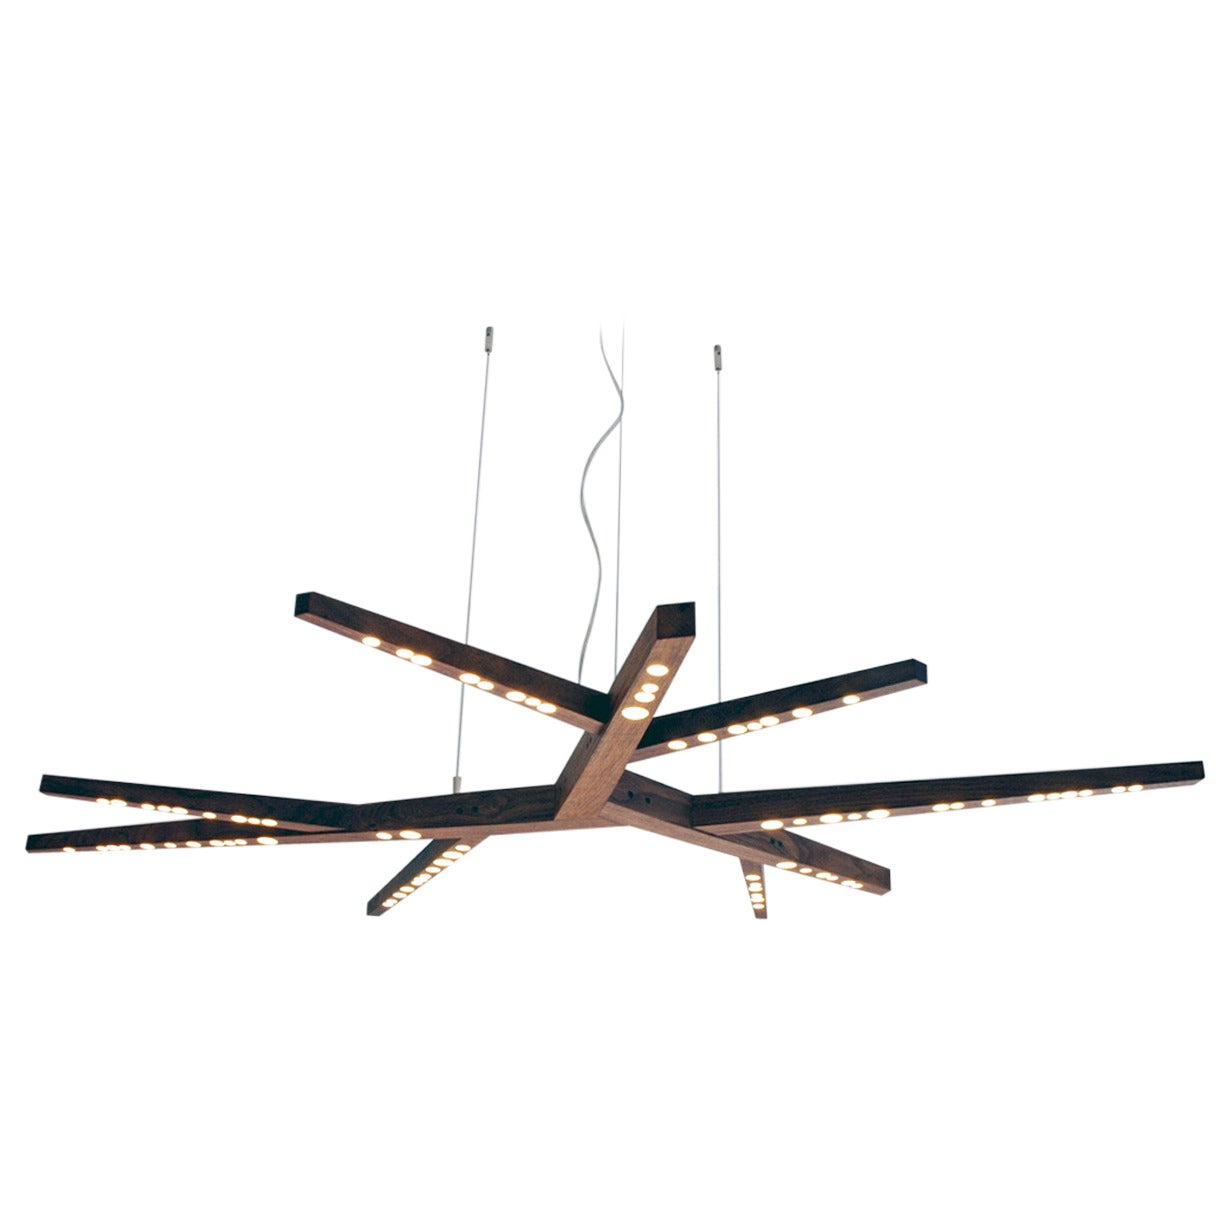 Myco 54 x 38 Ceiling Light Sculpture